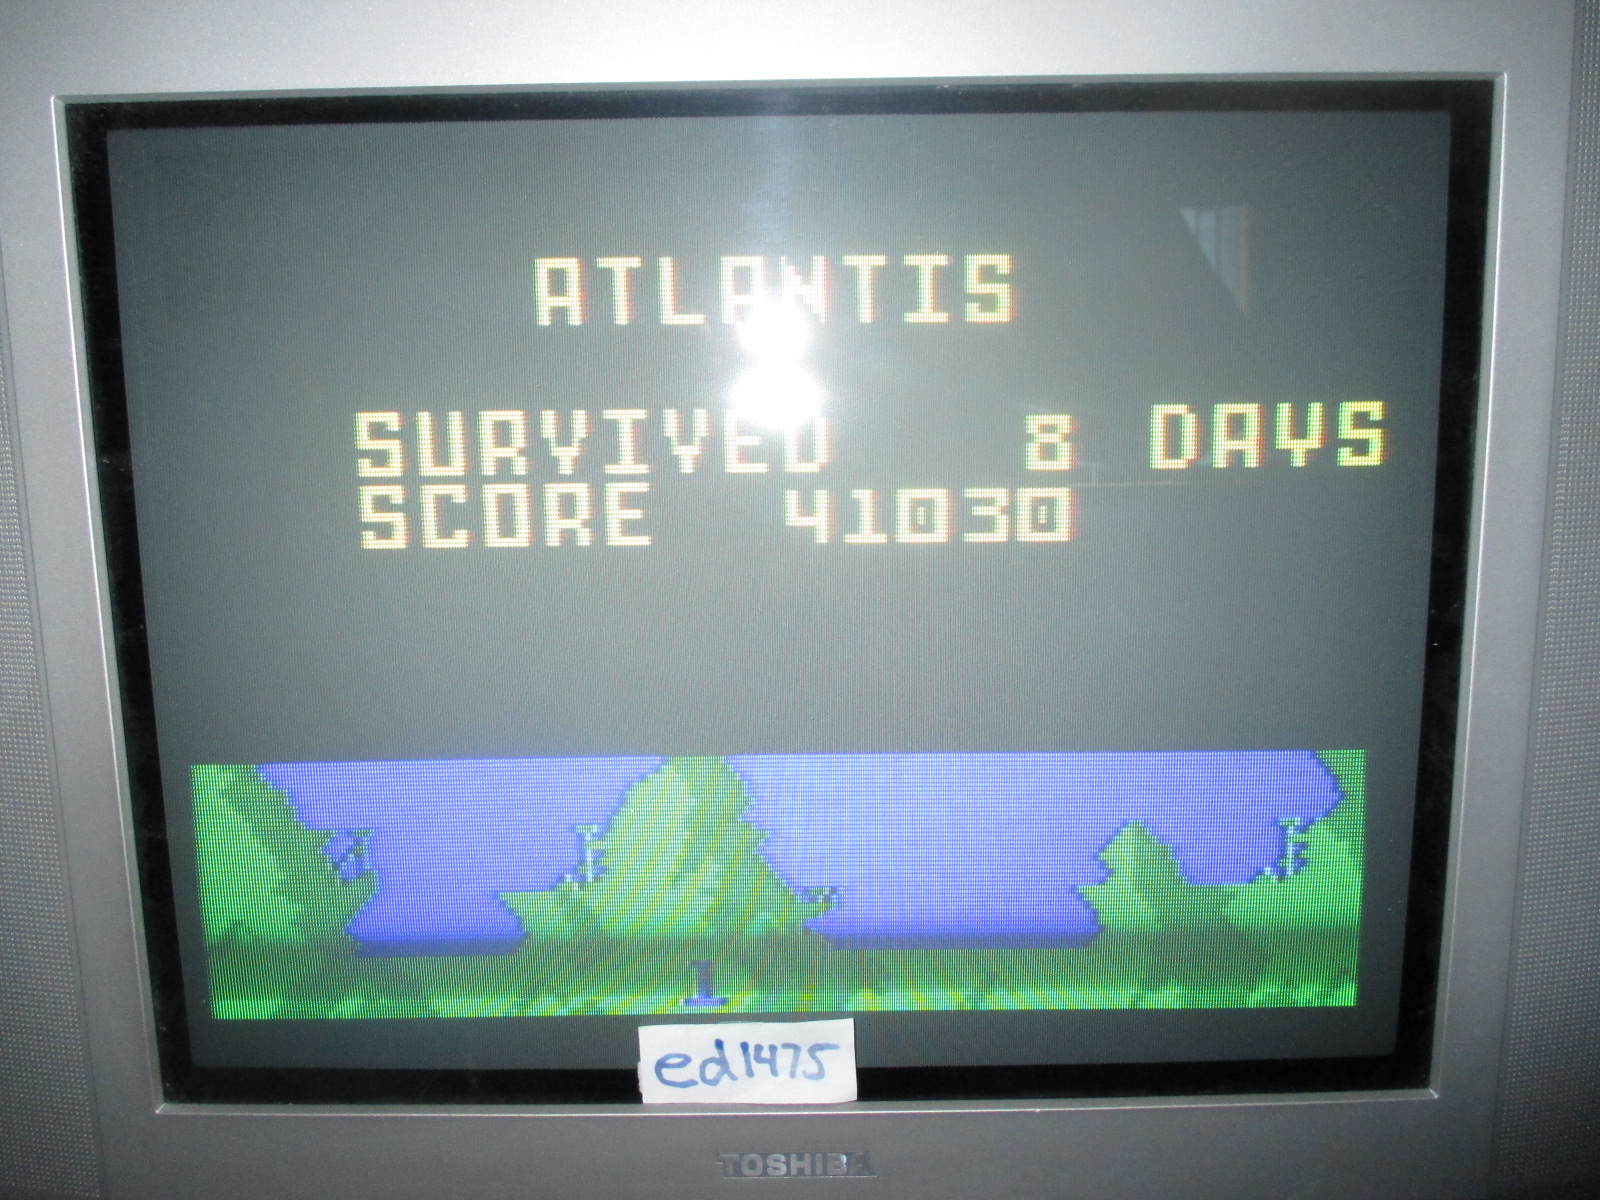 ed1475: Atlantis: Easy (Intellivision) 41,030 points on 2014-06-25 19:29:04